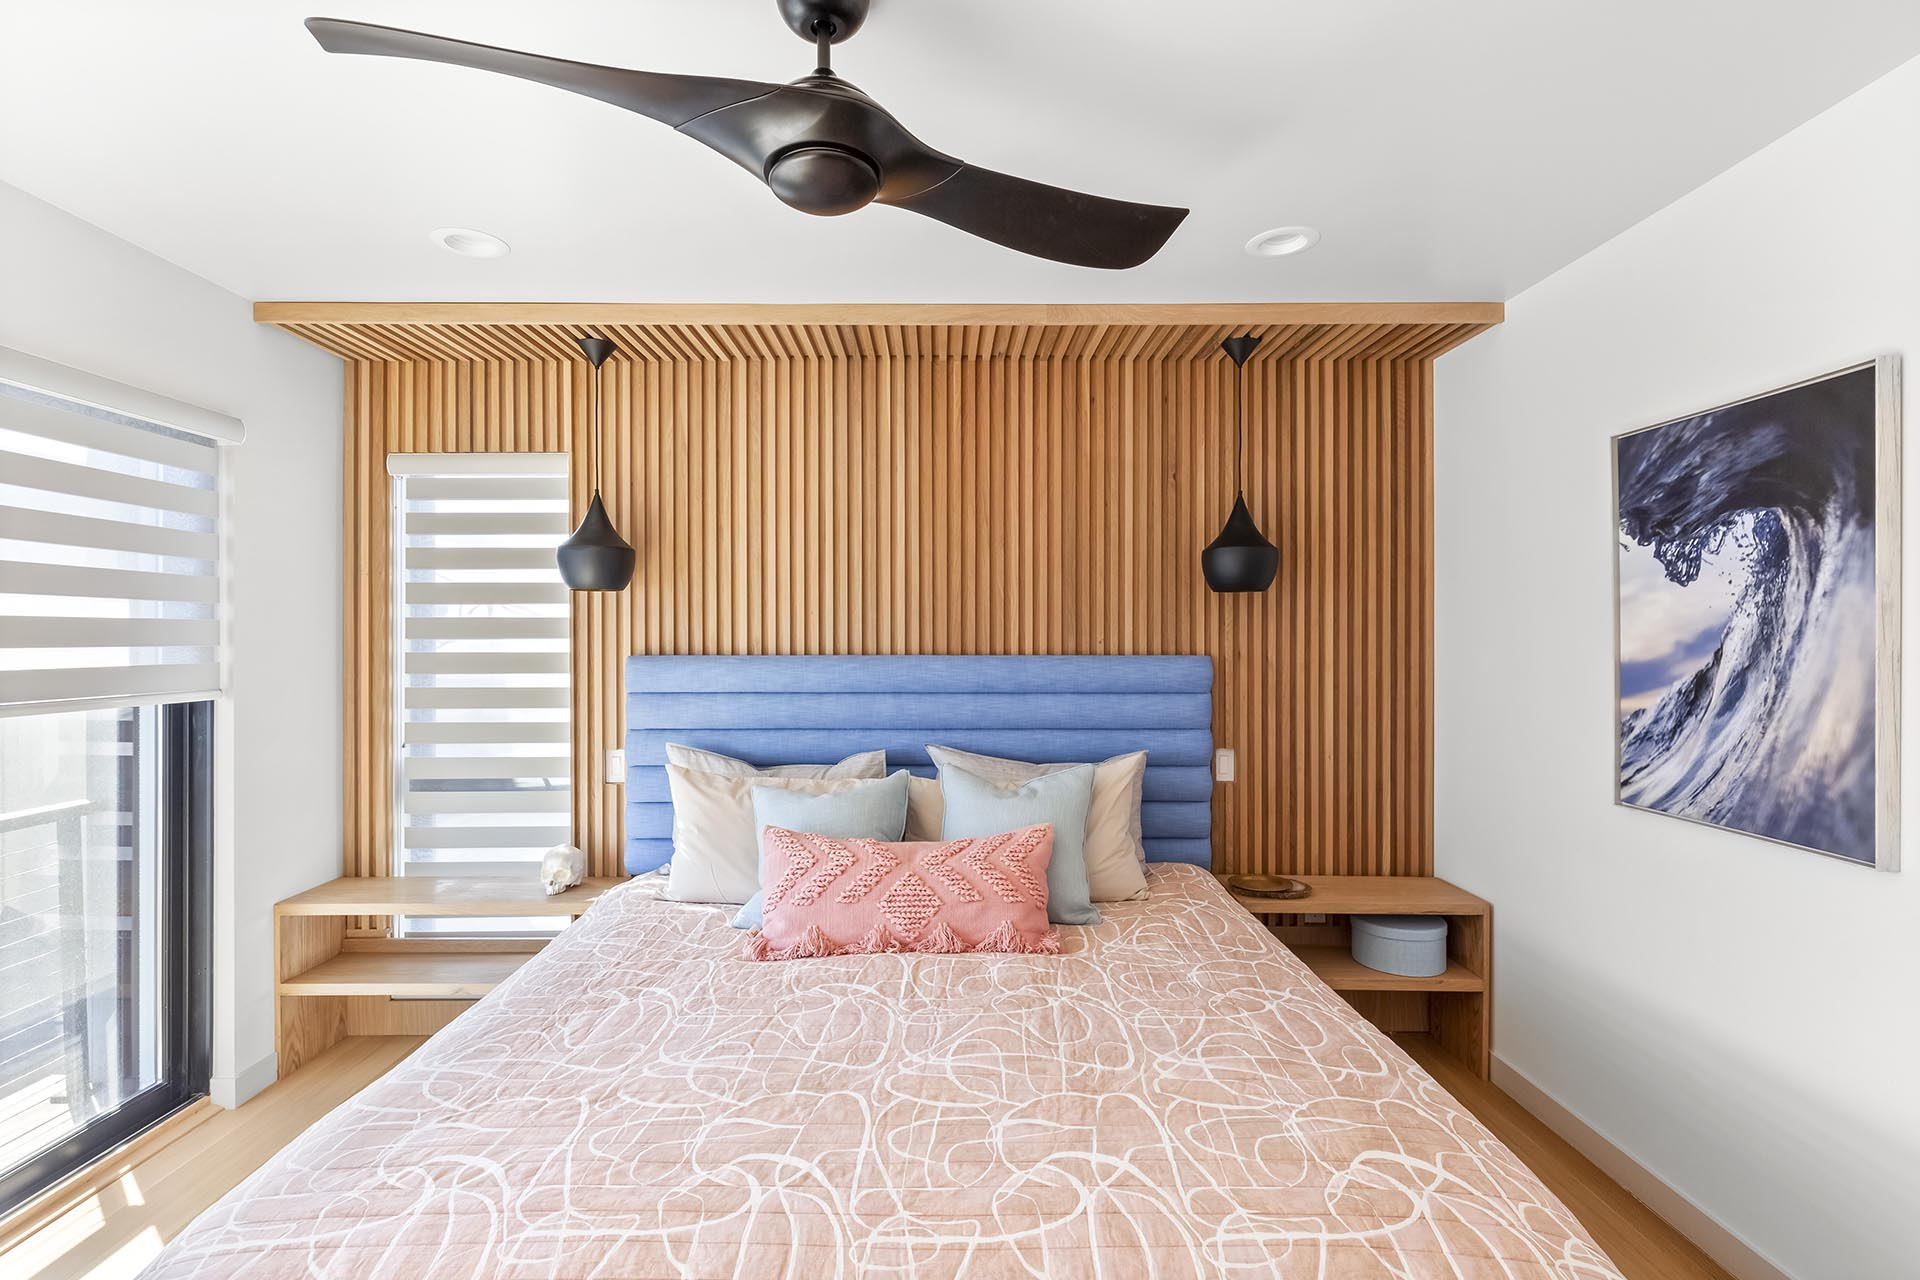 A wood accent wall in this modern bedroom has vertical slats to add a sense of height to the room.